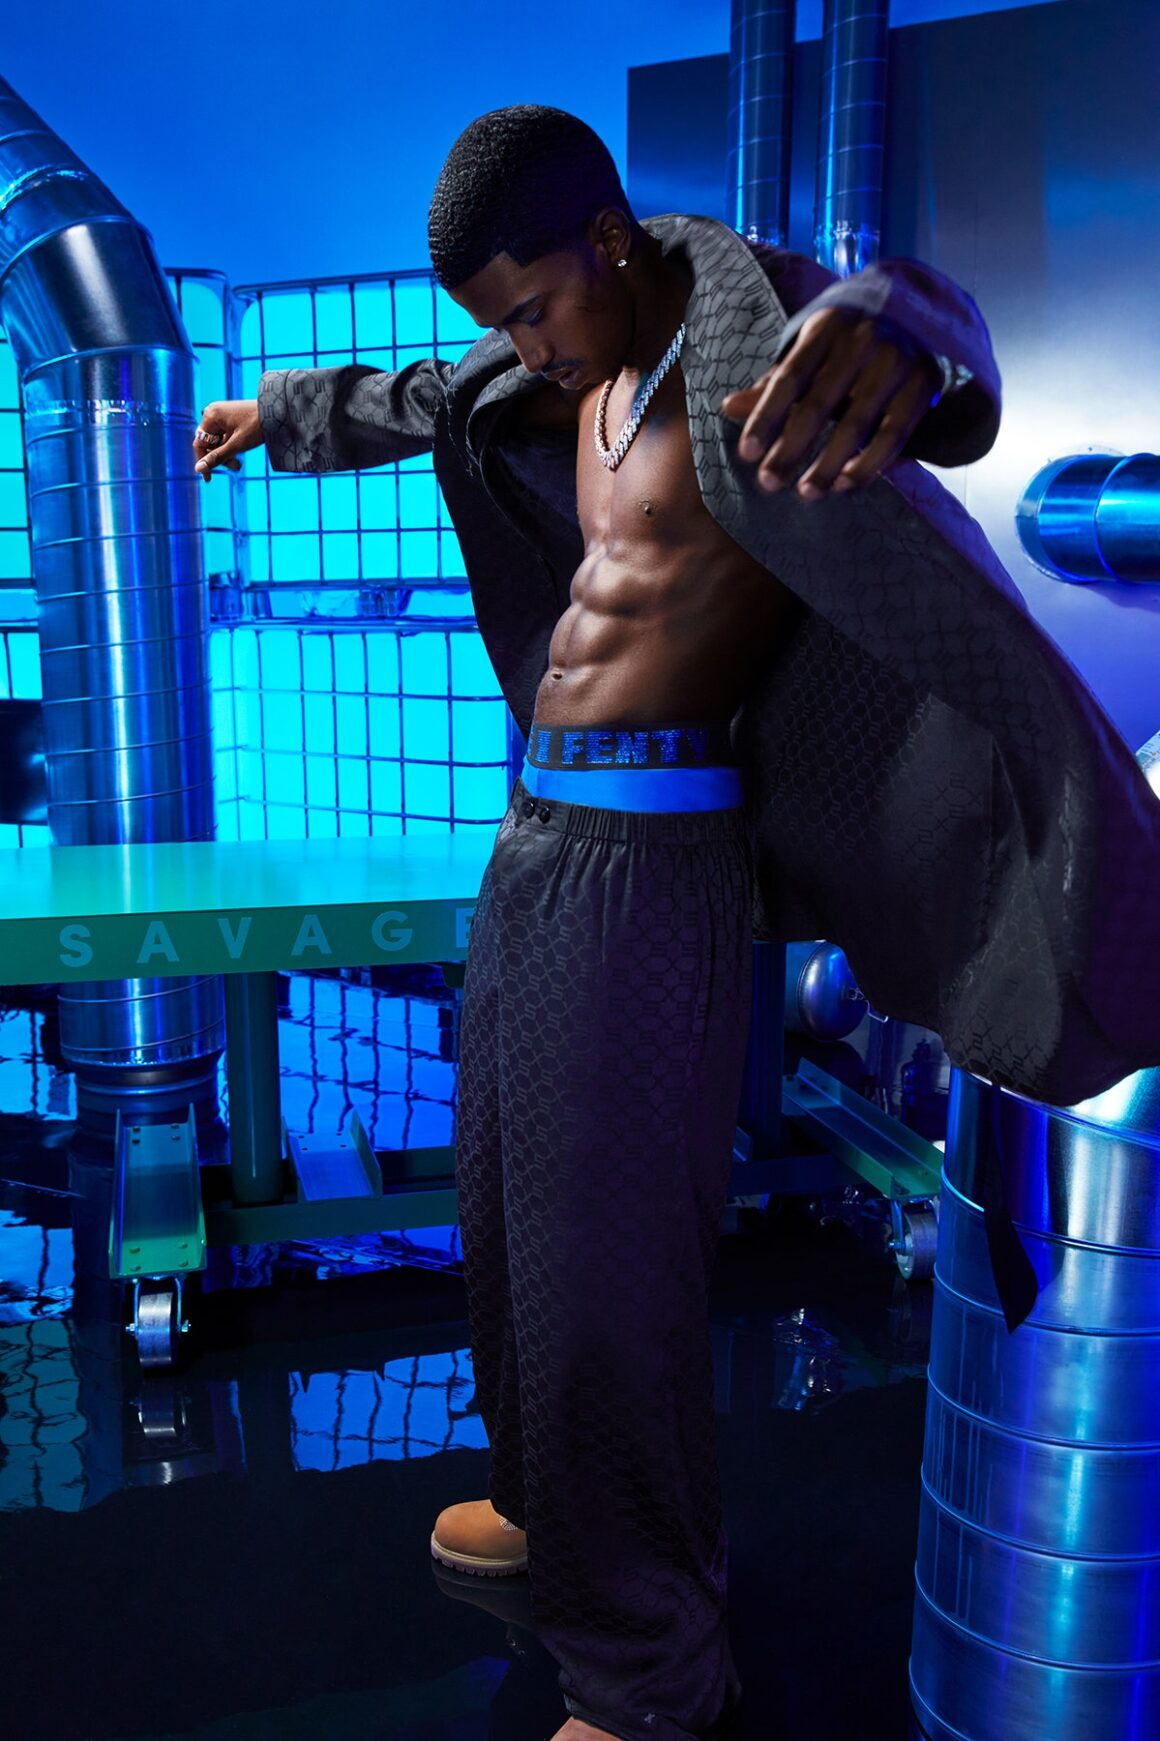 Rihanna's Savage x Fenty Men's Collection Featuring Christian Combs' Abs